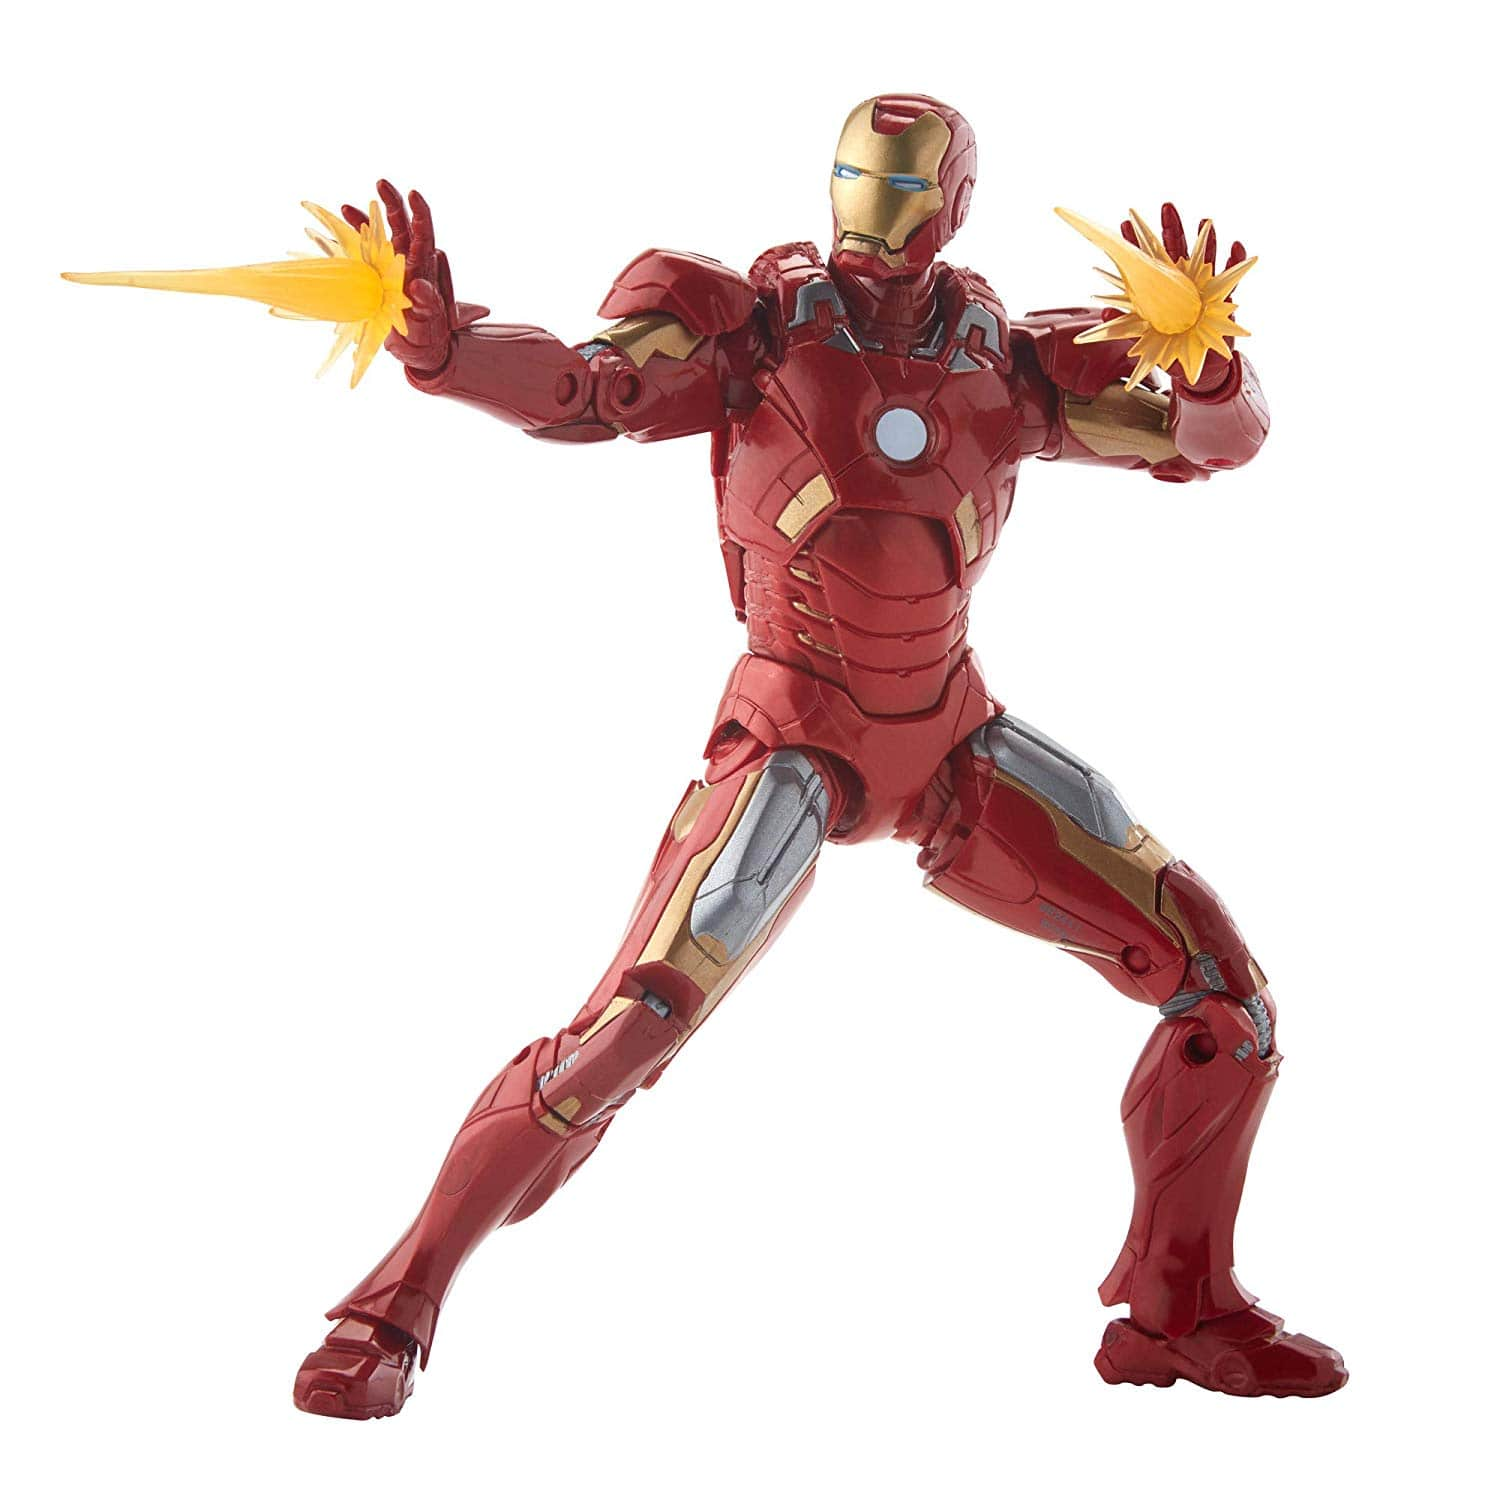 Babies Toys Walmart Marvel Studios The First Ten Years The Avengers Iron Man